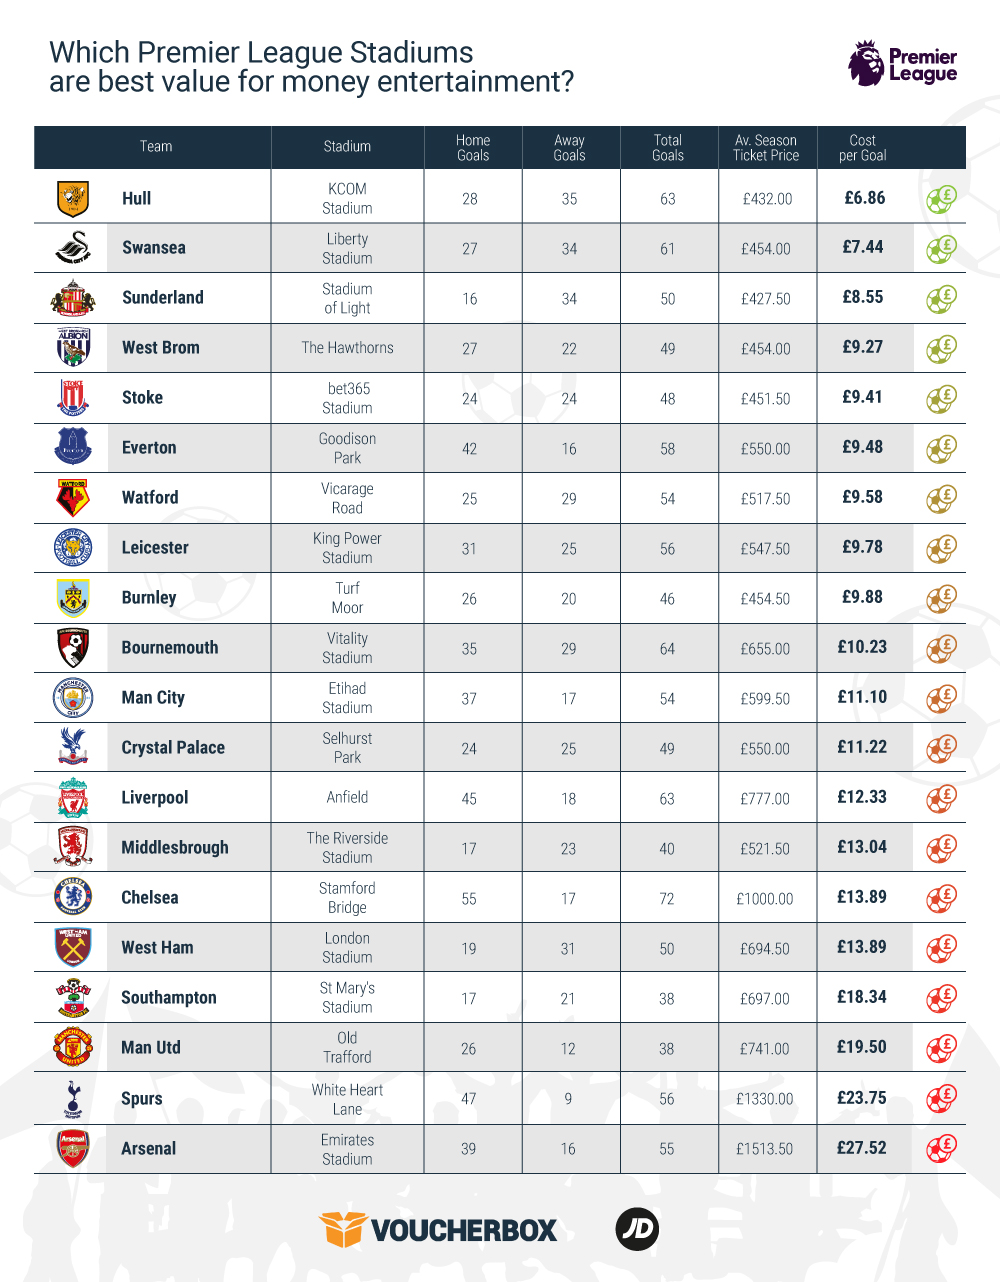 The price of an average Premier League goal